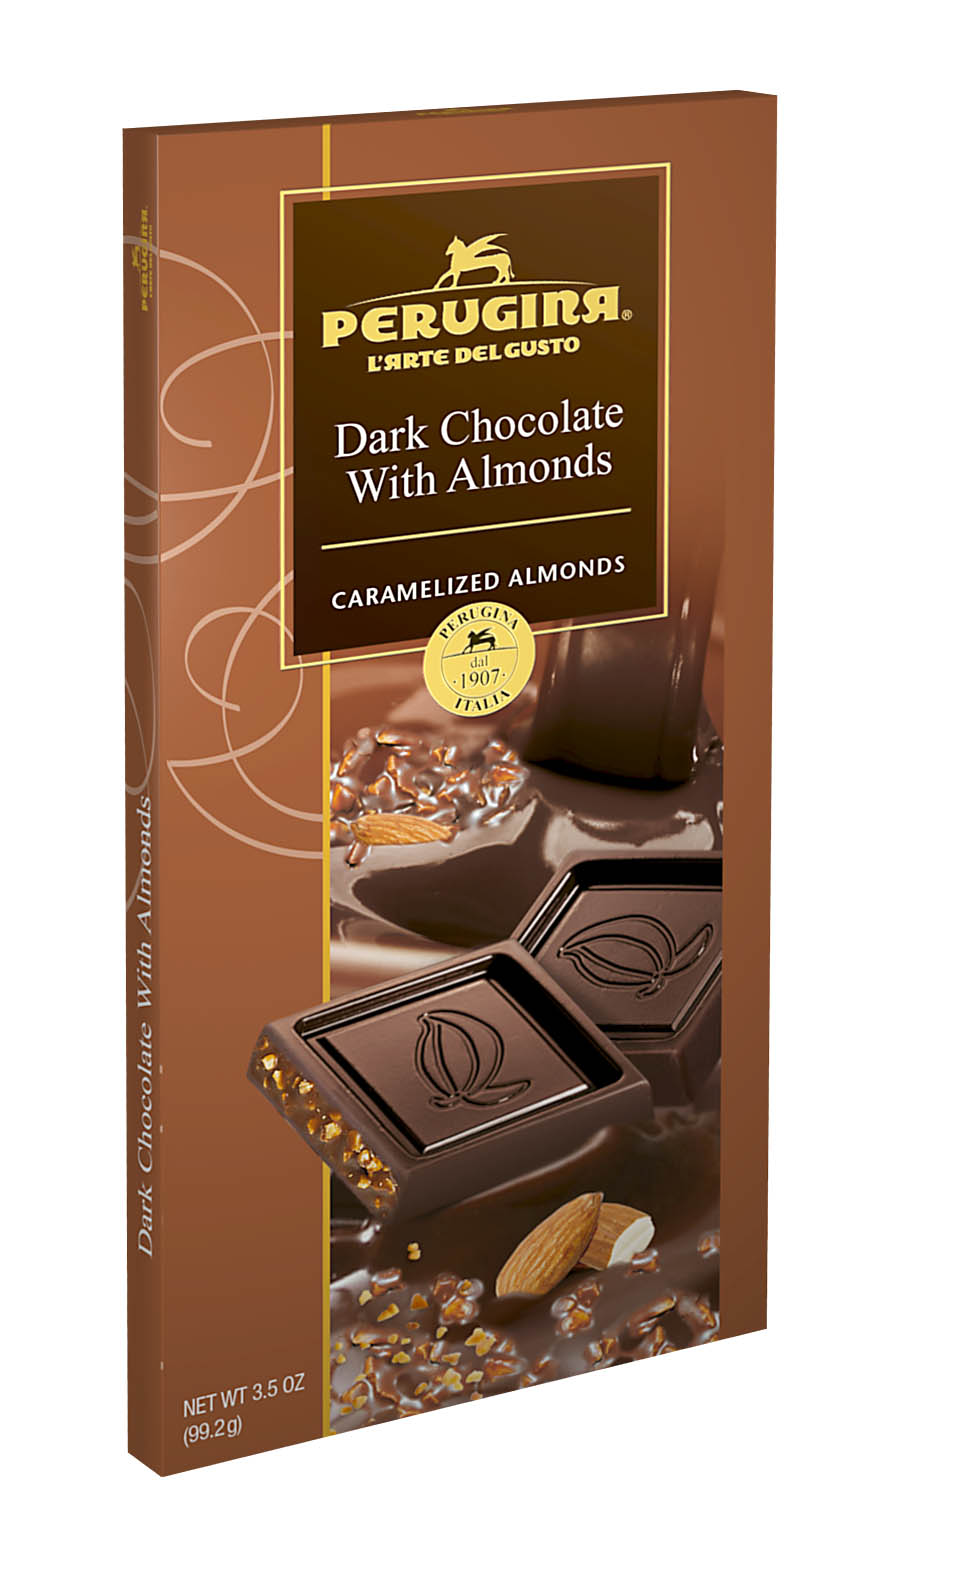 Perugina Dark Chocolate …